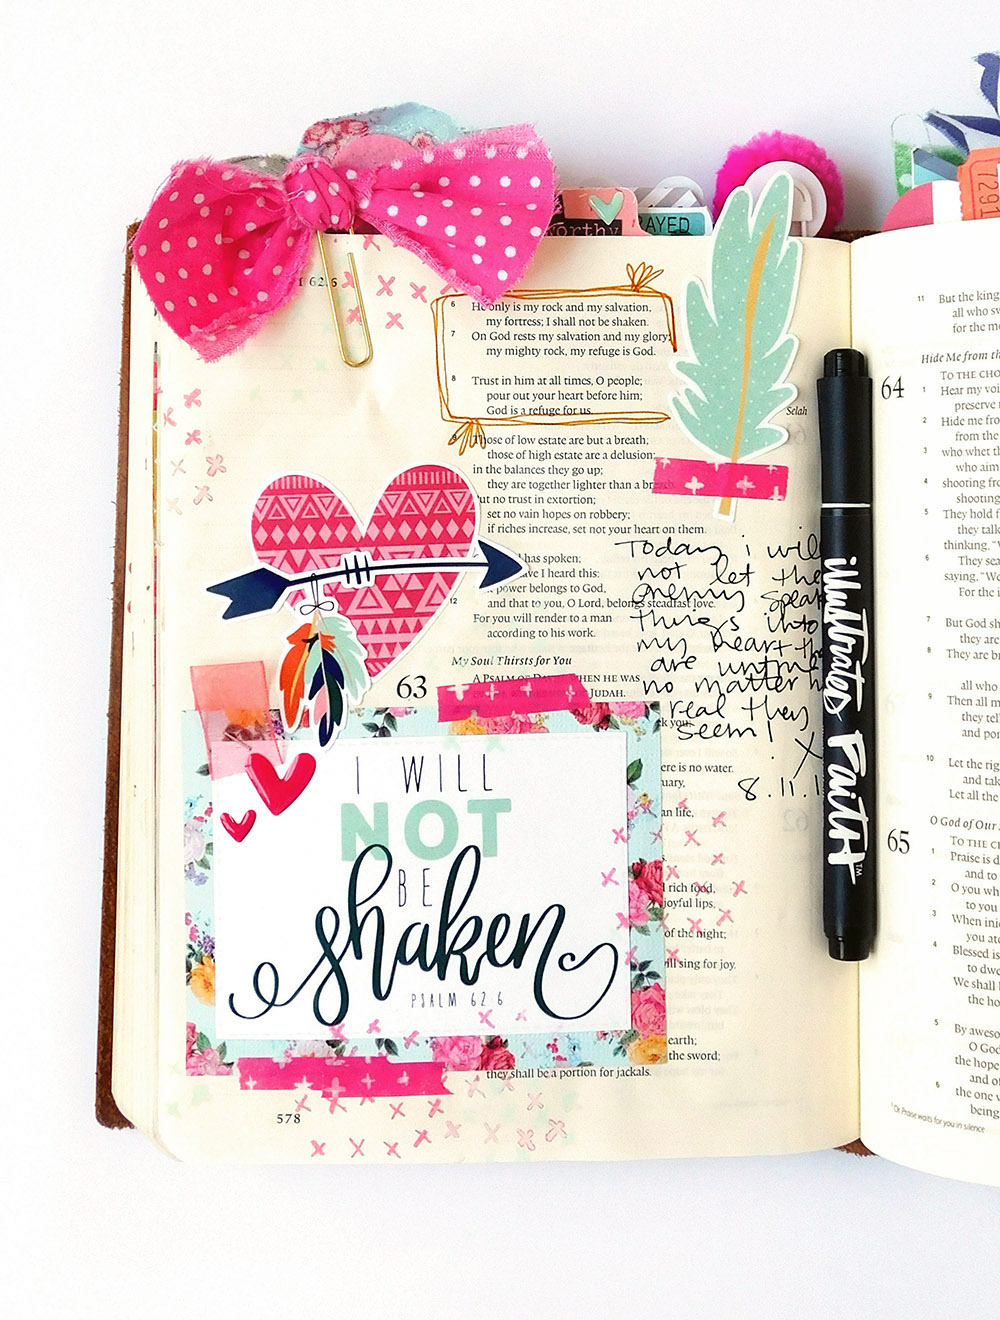 hybrid printable Bible journaling entry by Elaine Davis | 15 Minute Bible Journaling Challenge // Part 1